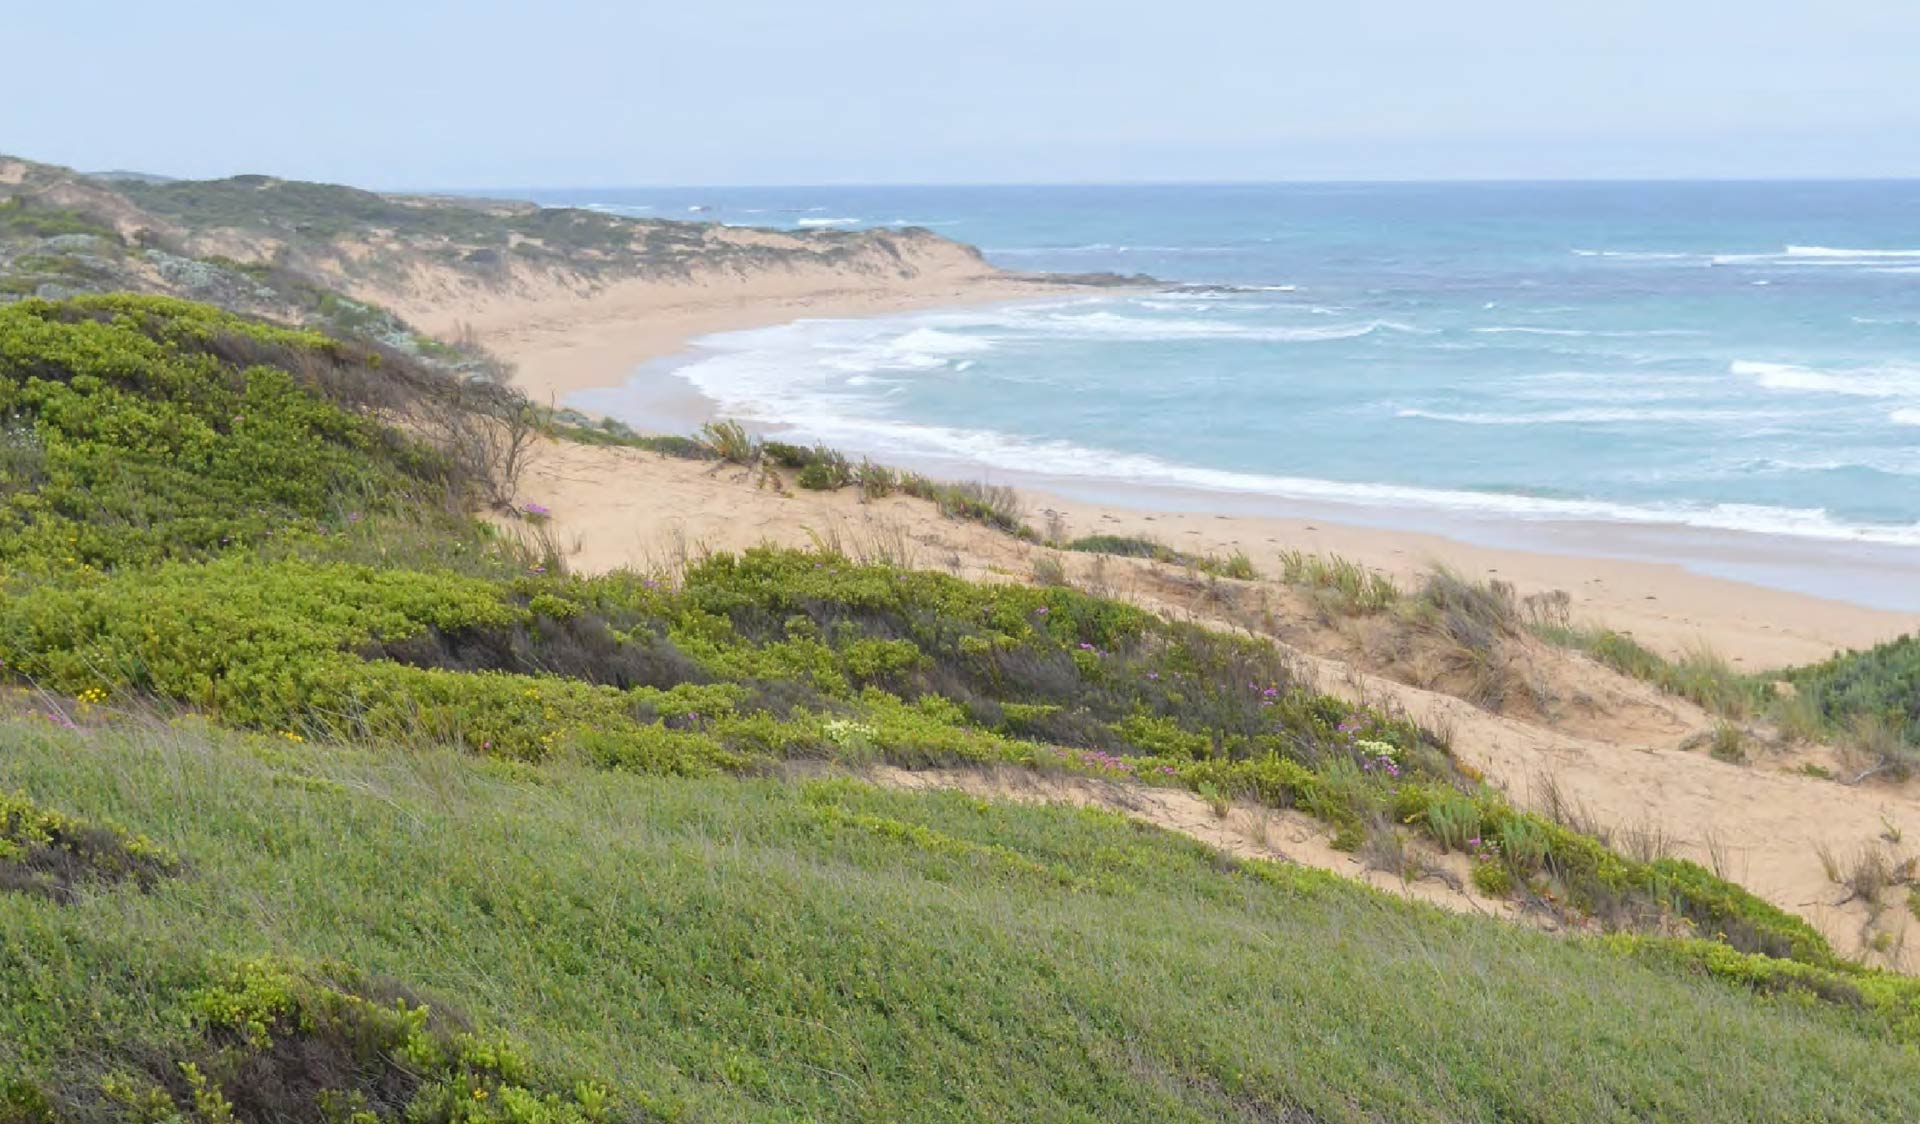 Grass covered dunes in front of a sweeping bay beach